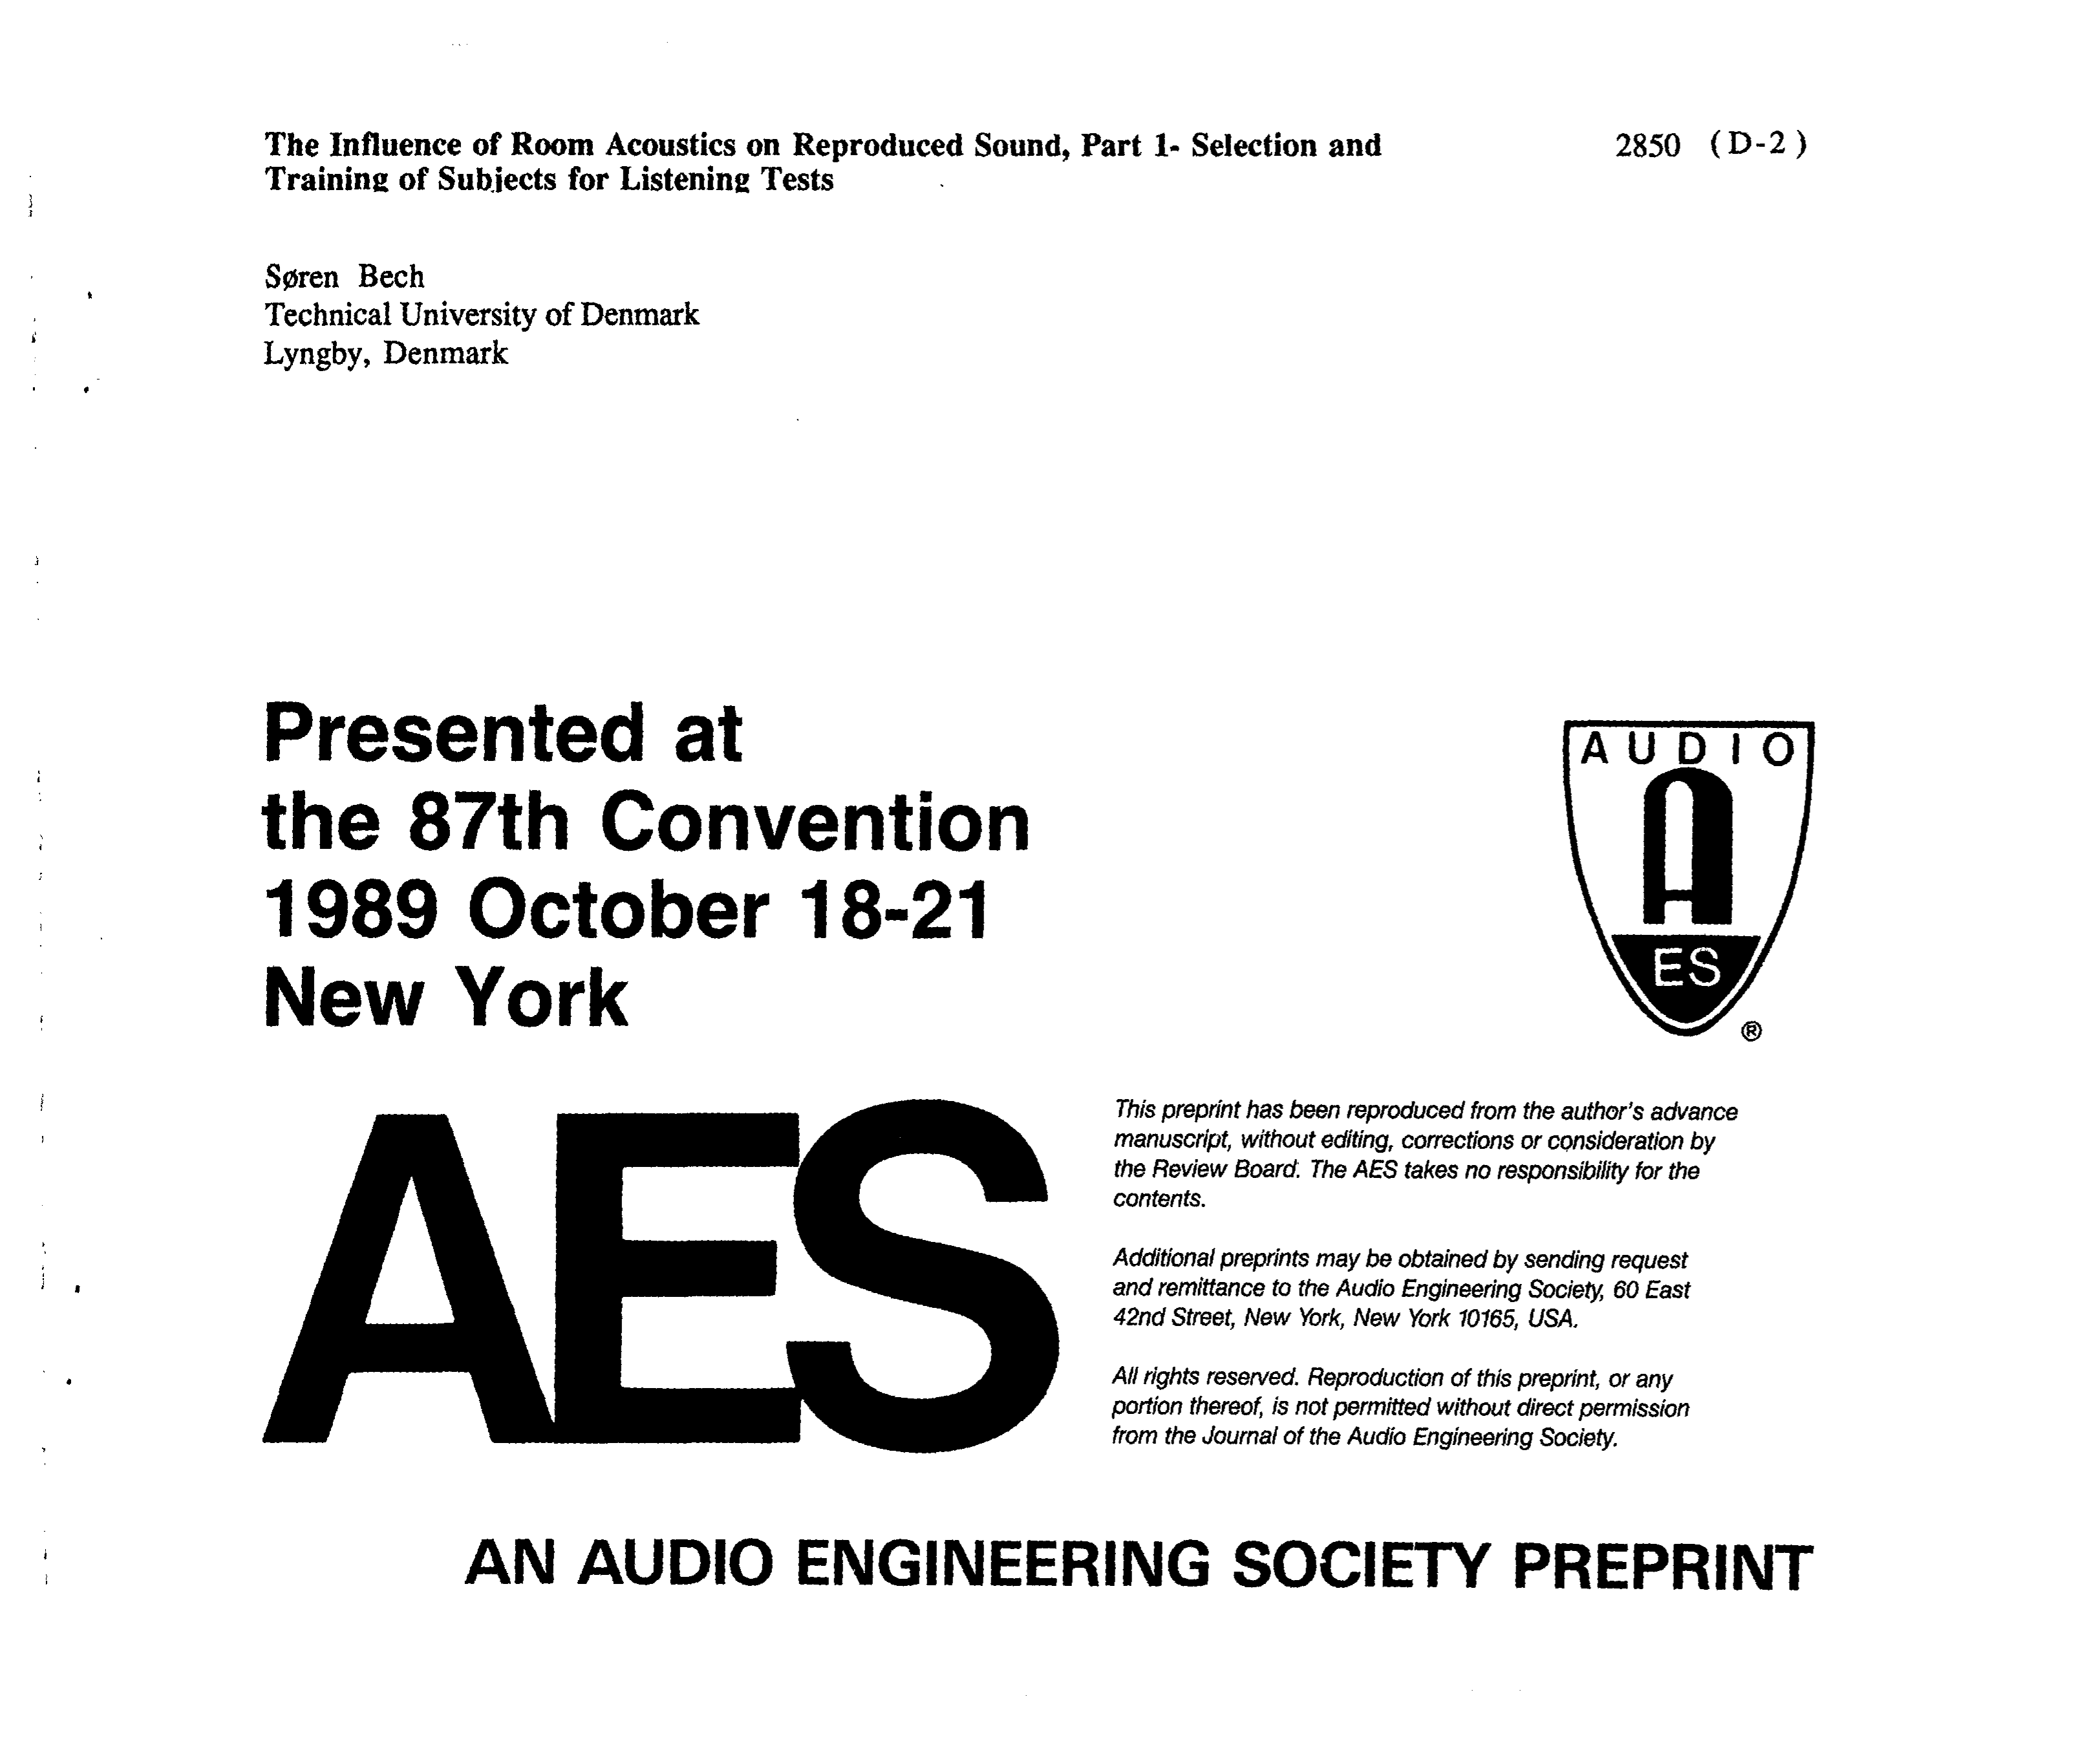 Aes E Library The Influence Of Room Acoustics On Reproduced Sound Indicate Power To Board Mode Selection In Following Order Part 1 And Training Subjects For Listening Tests